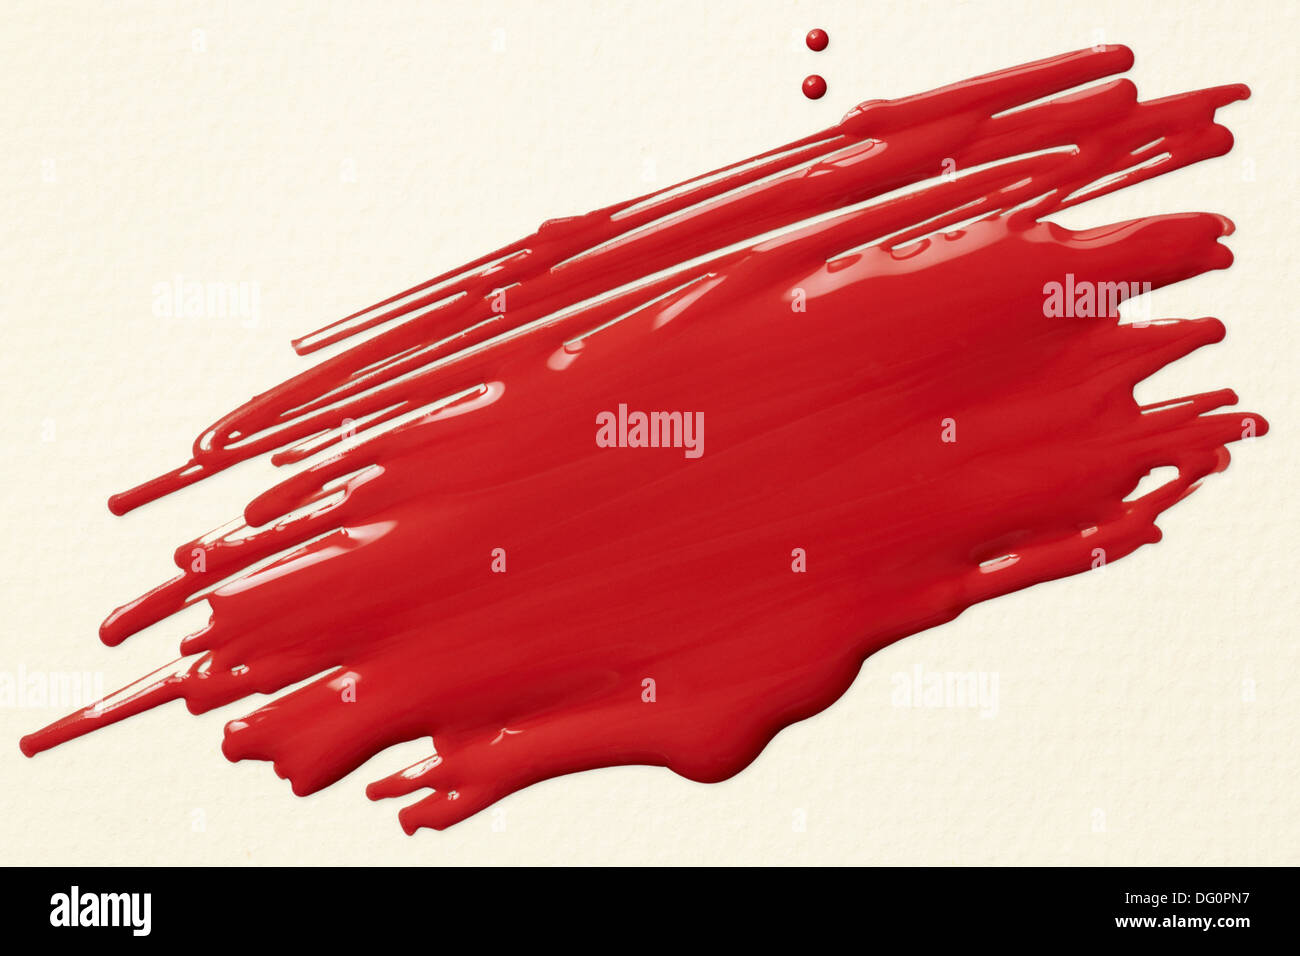 red paint scribble on white textured paper - Stock Image